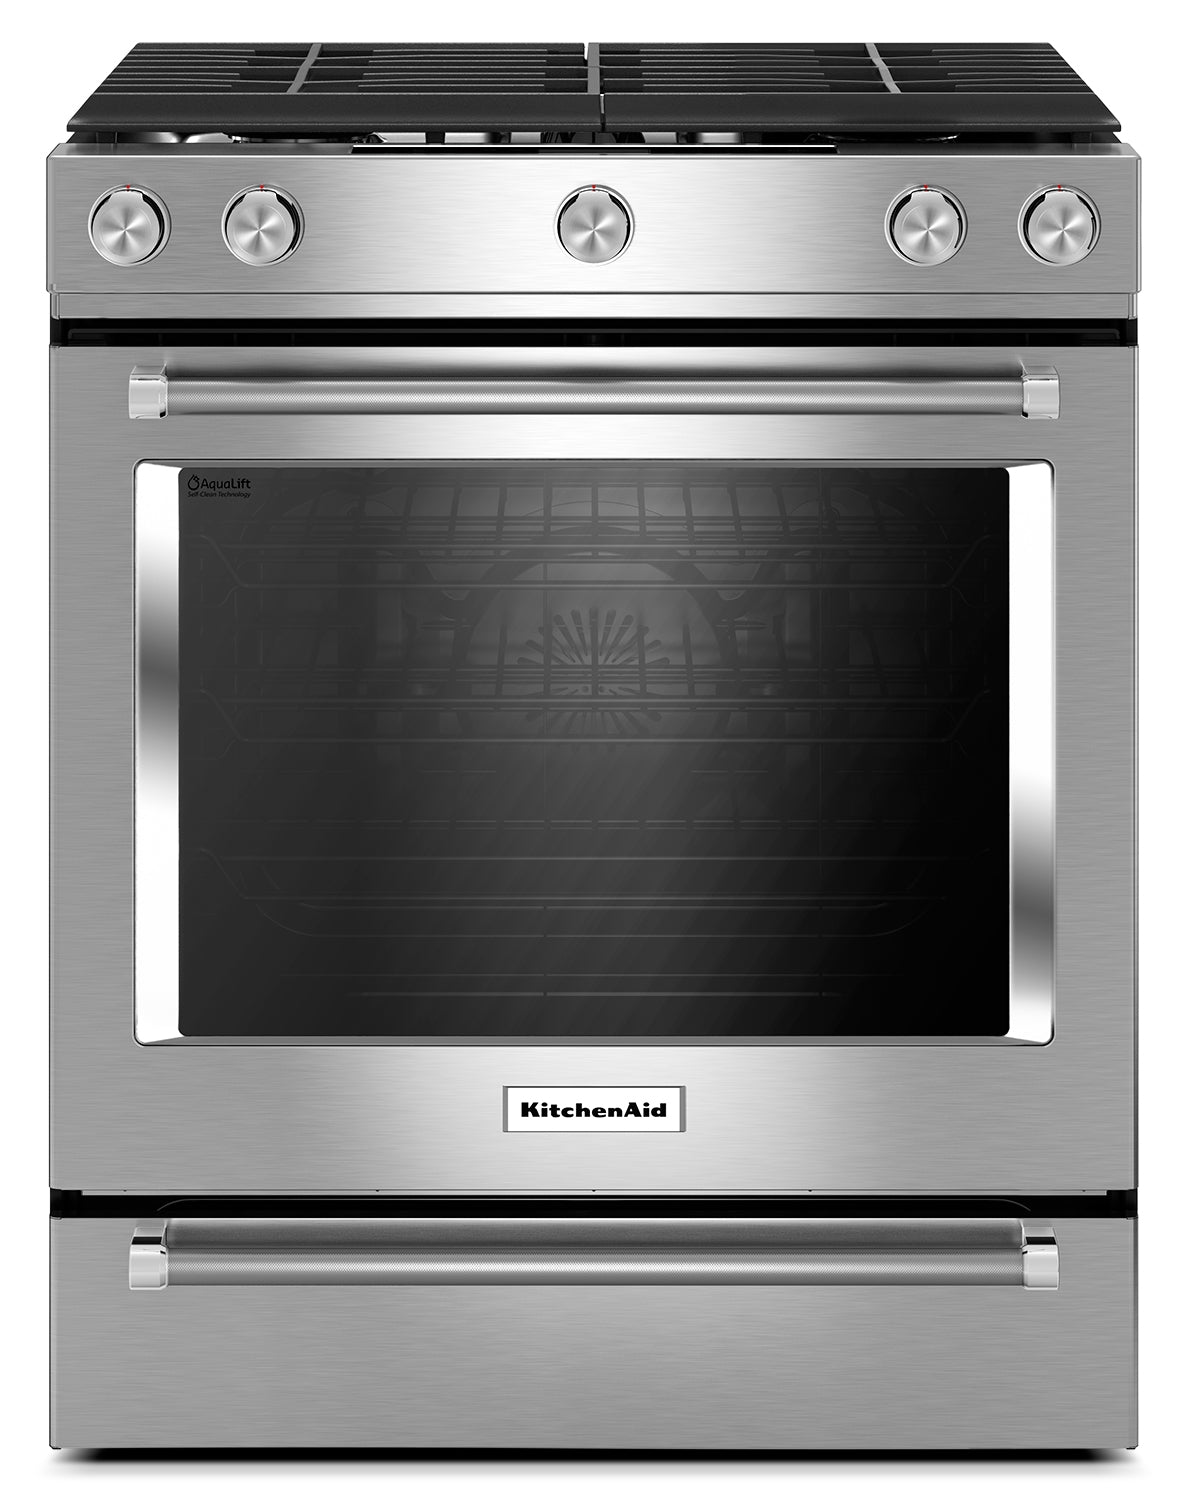 Miraculous Kitchenaid Stainless Steel Slide In Gas Convection Range 5 8 Cu Ft Ksgg700Ess Download Free Architecture Designs Embacsunscenecom